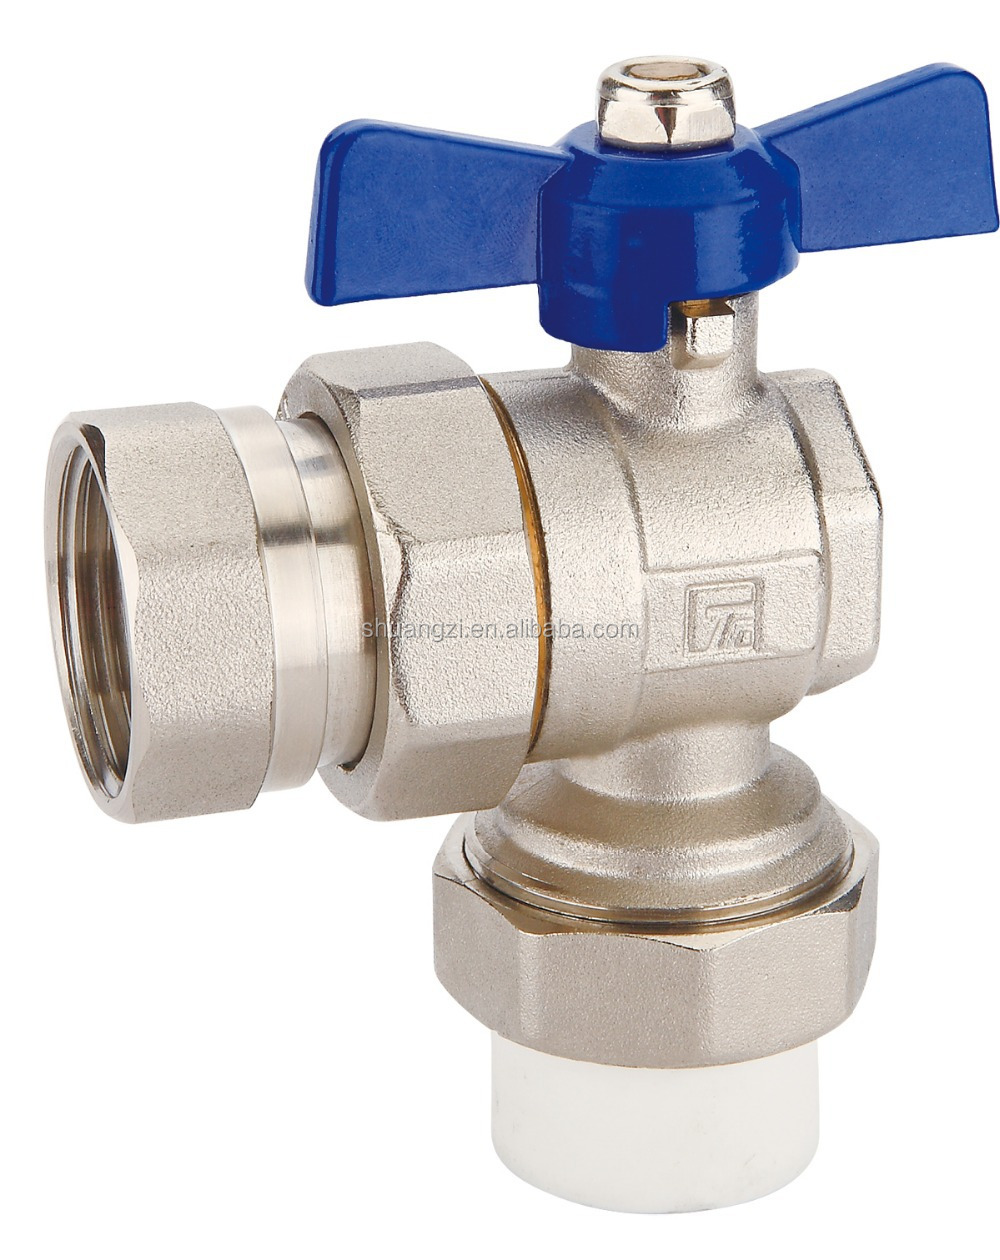 T419 angle type ball valve with female union and ppr end for heat fusion,body forging with nickel plated